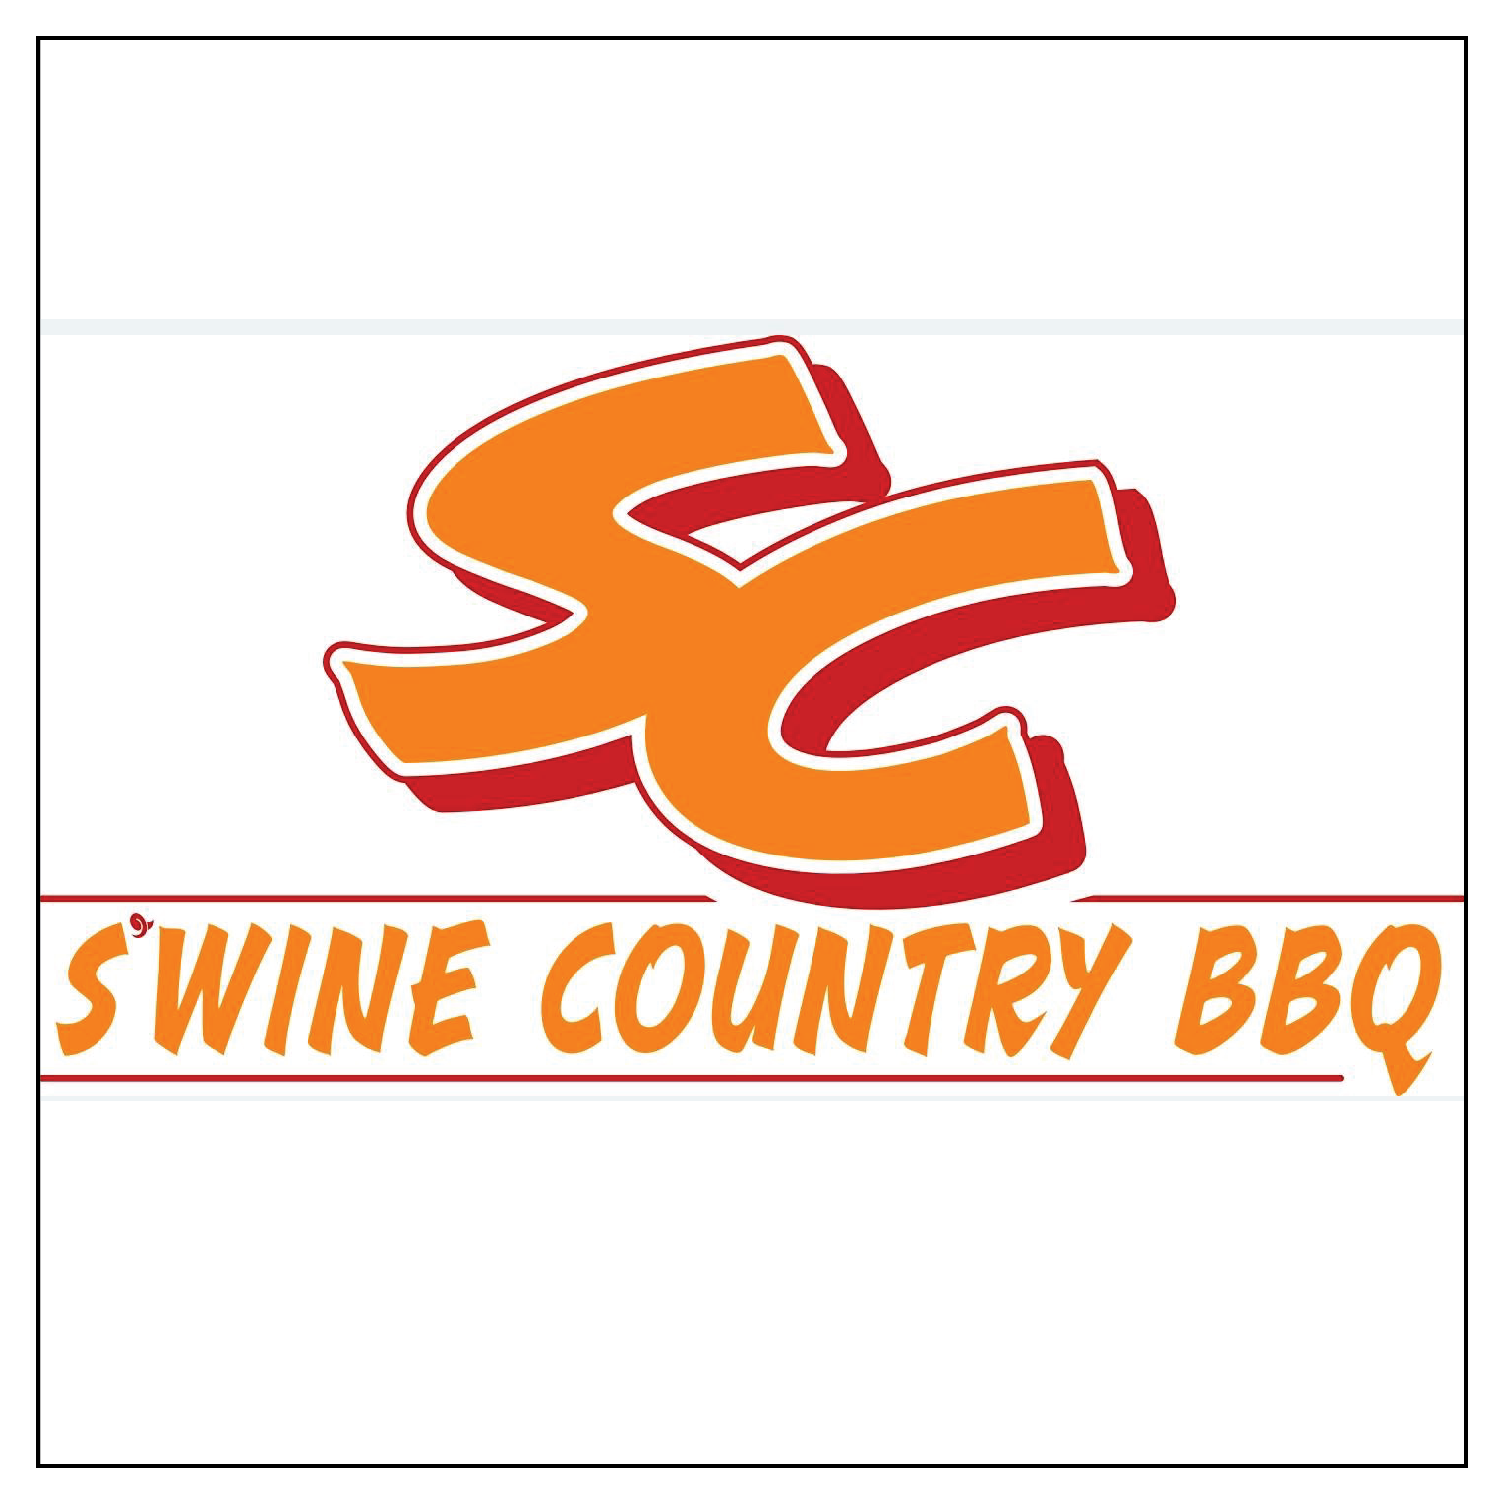 s'wineCountryBBQLogo-01.png